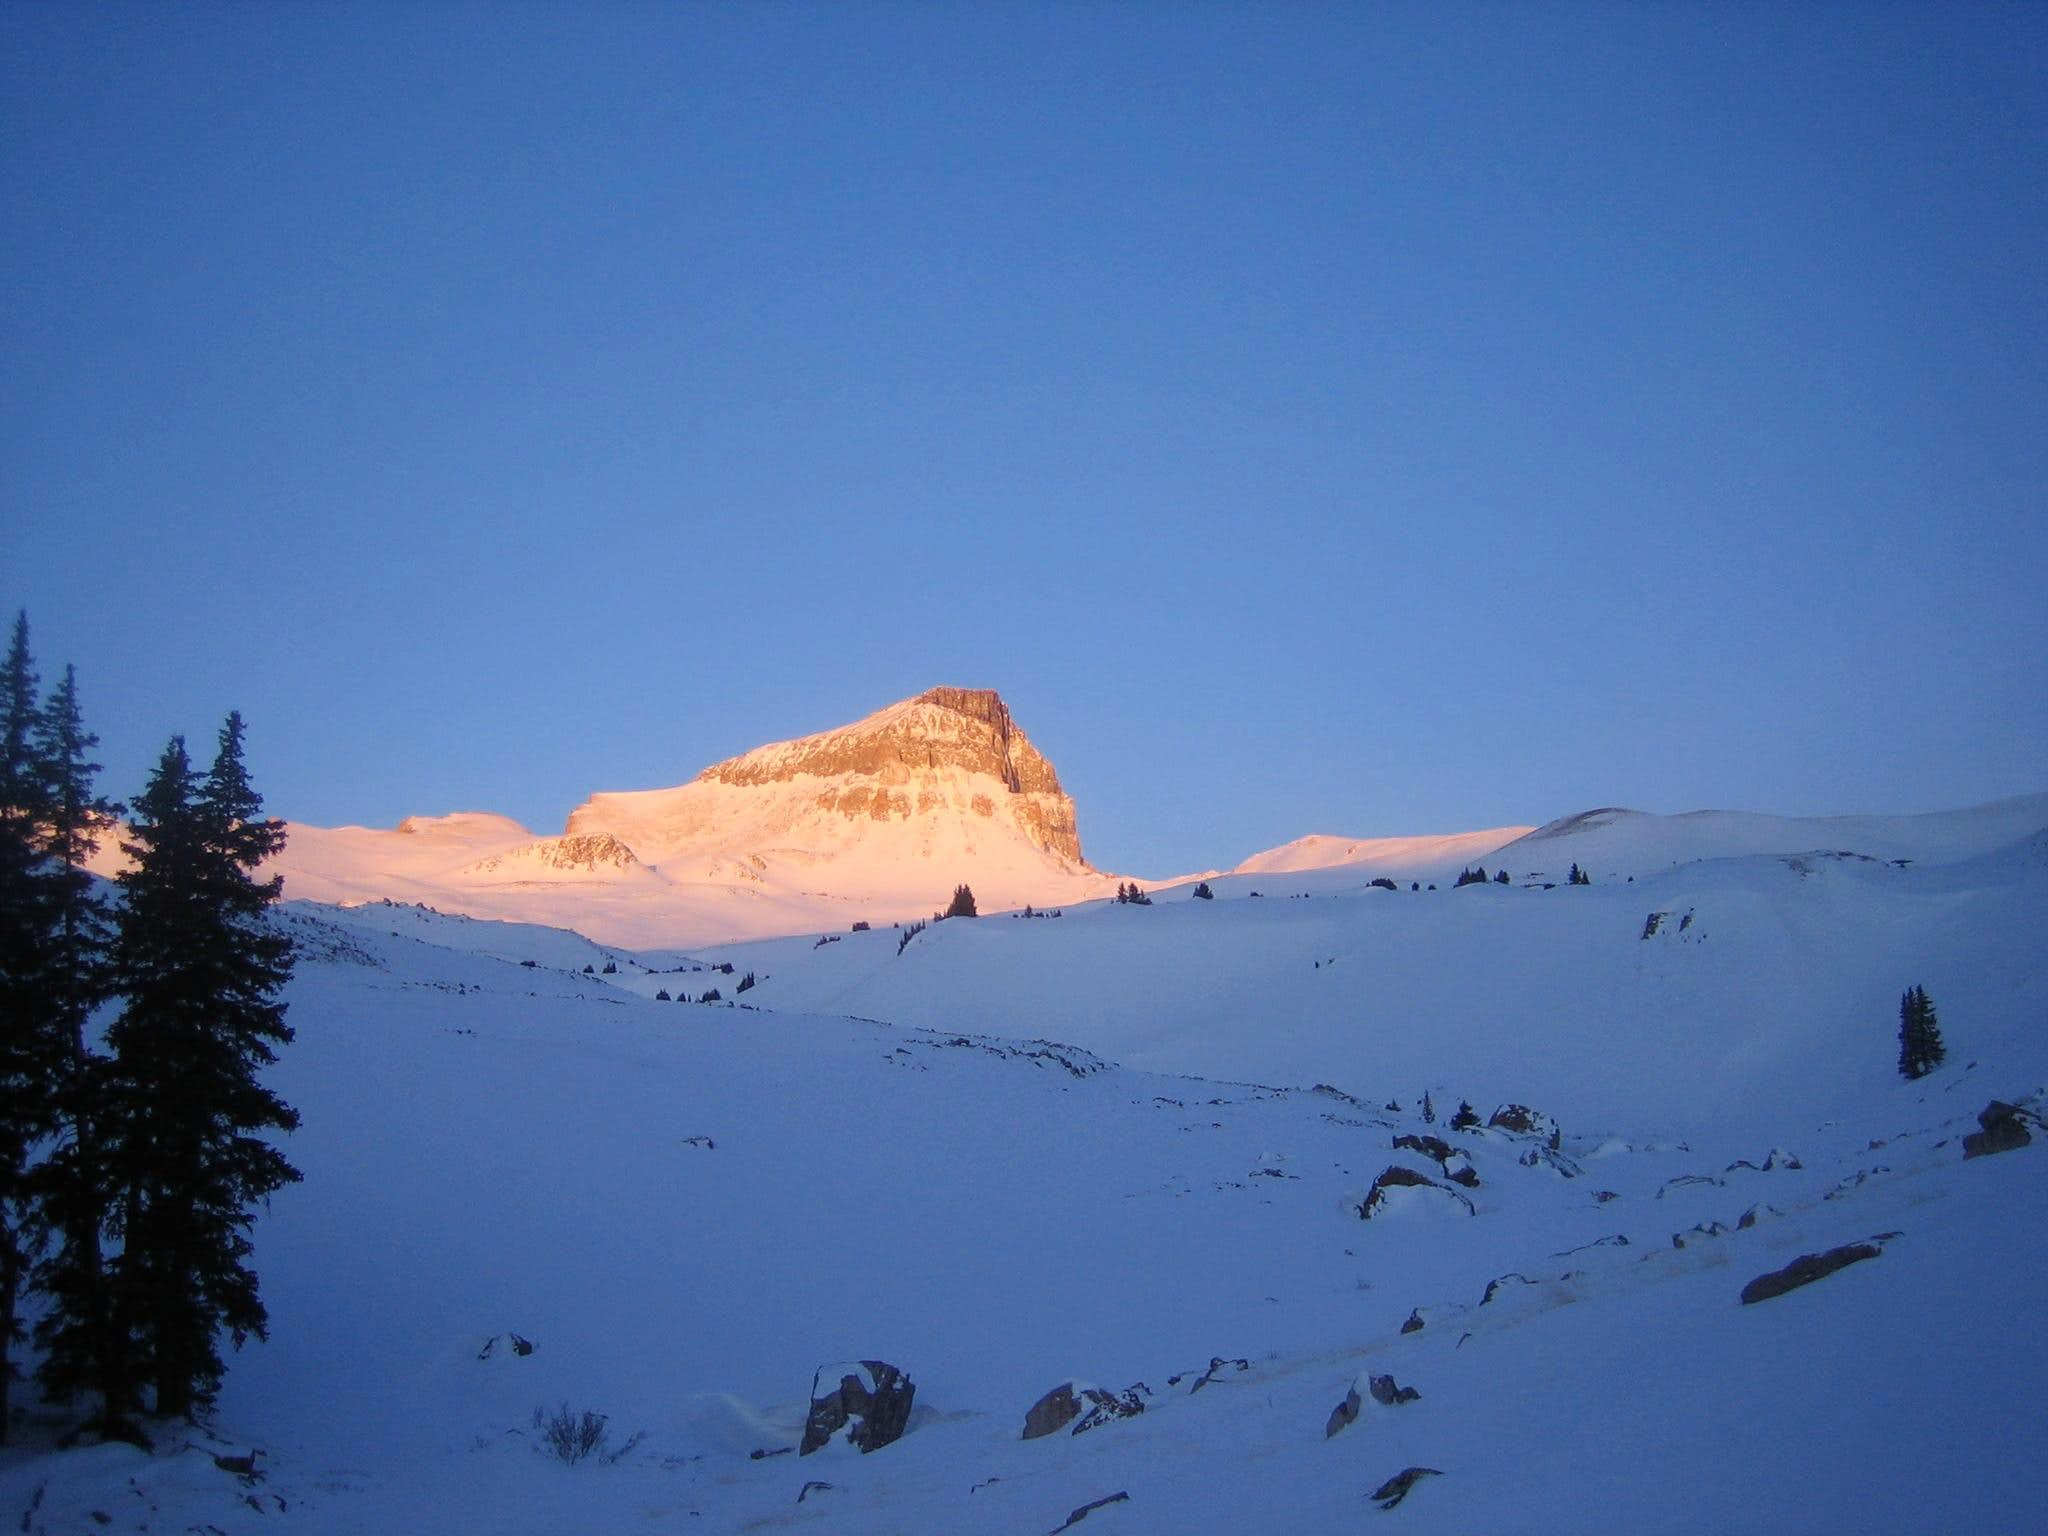 Winter in the San Juans - Uncompahgre 02/15/09